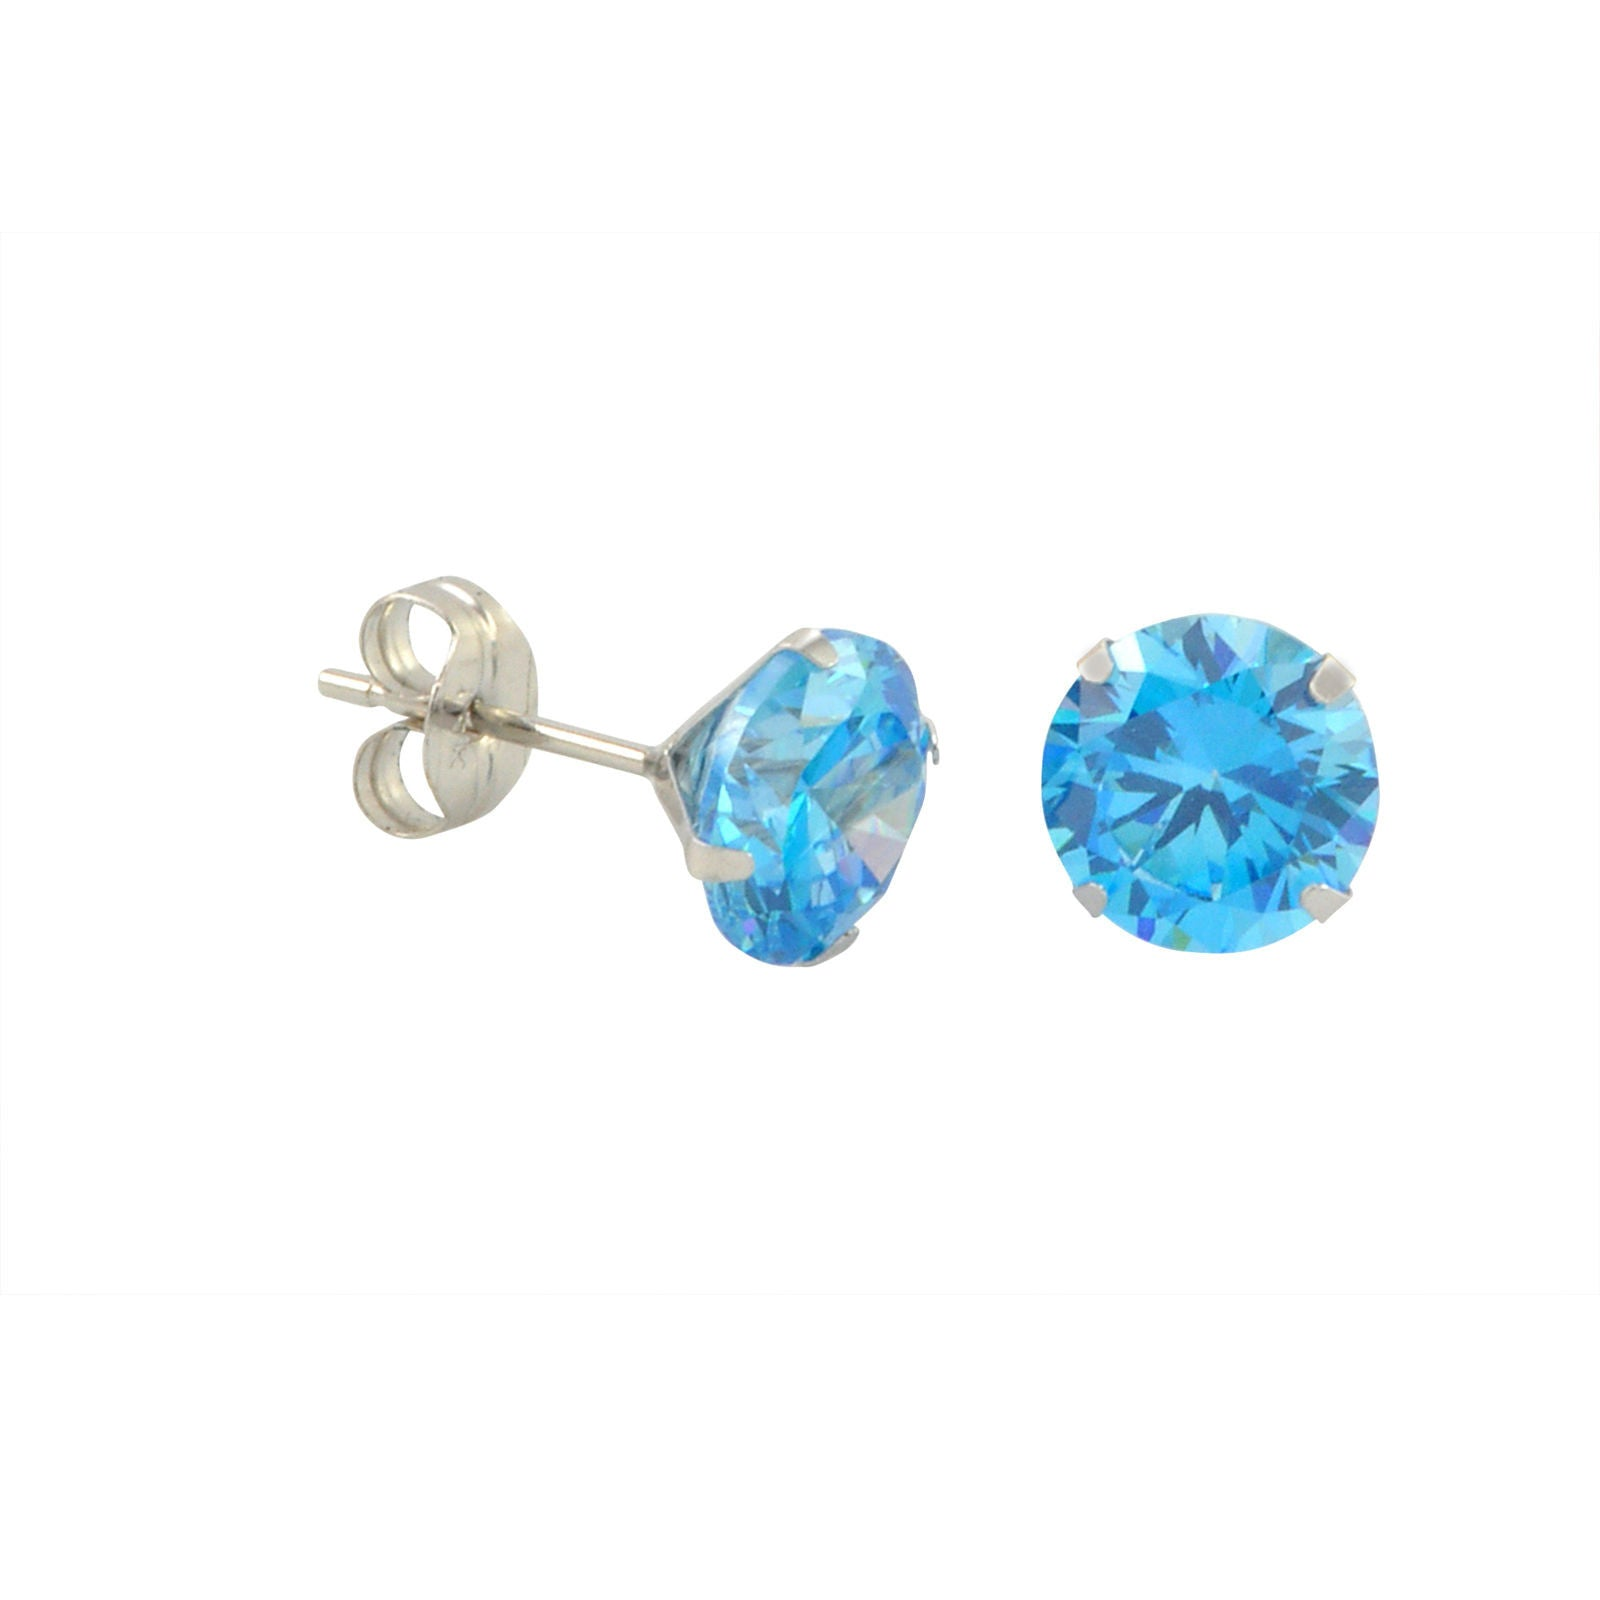 jewellery image gold oval blue gemstone earrings stud topaz white